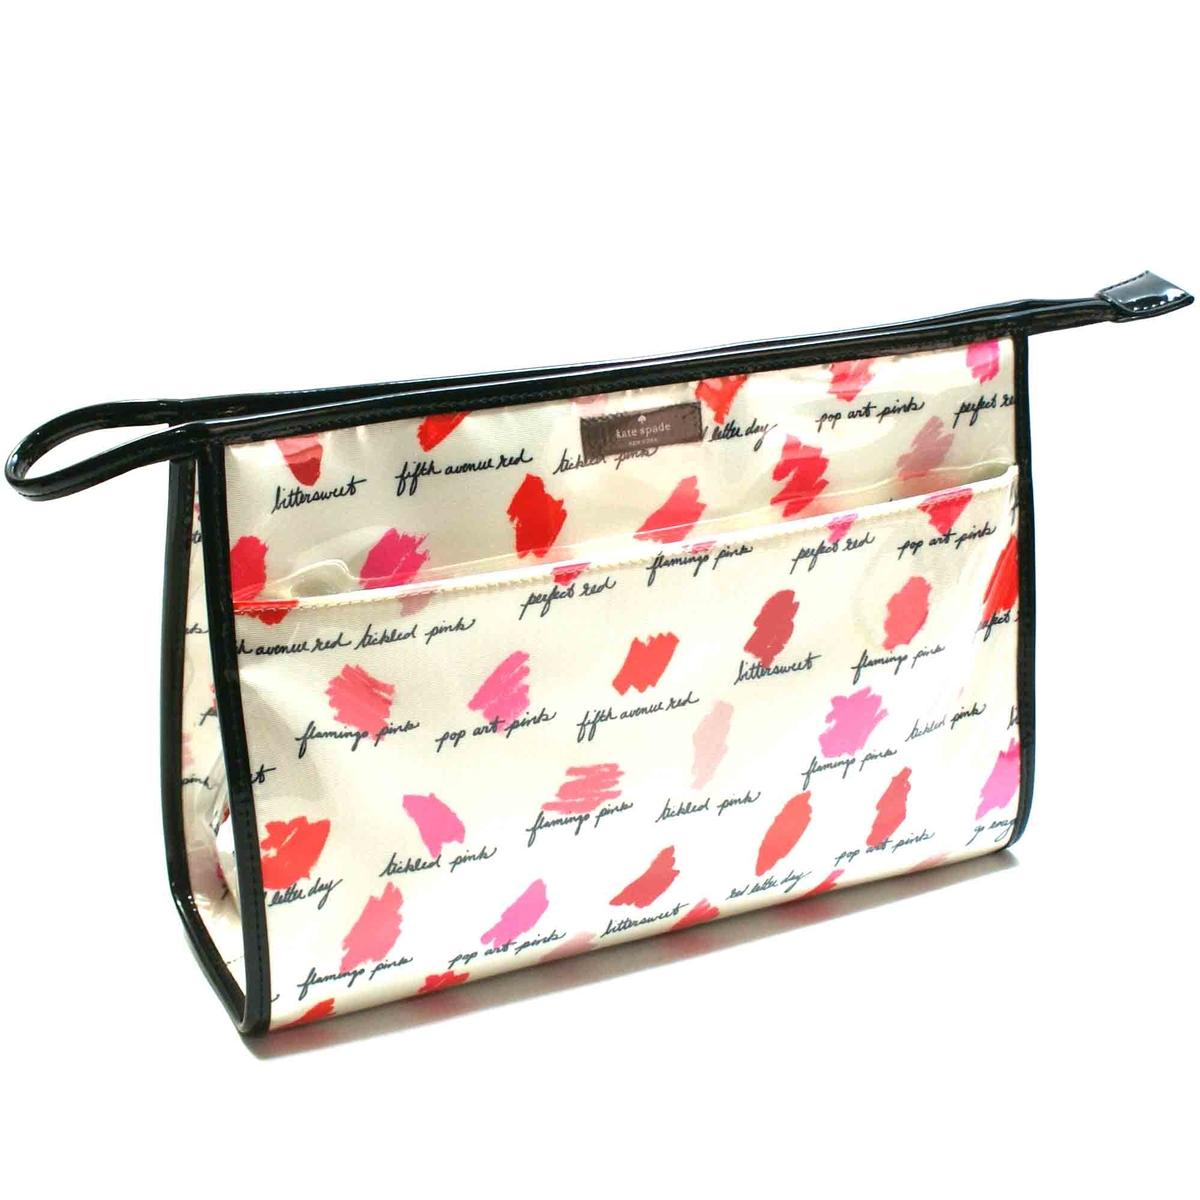 buy online 396be a5abf Kate Spade Large Heddy Lilac Court Cosmetic Bag Lipstick #WLRU2142 ...